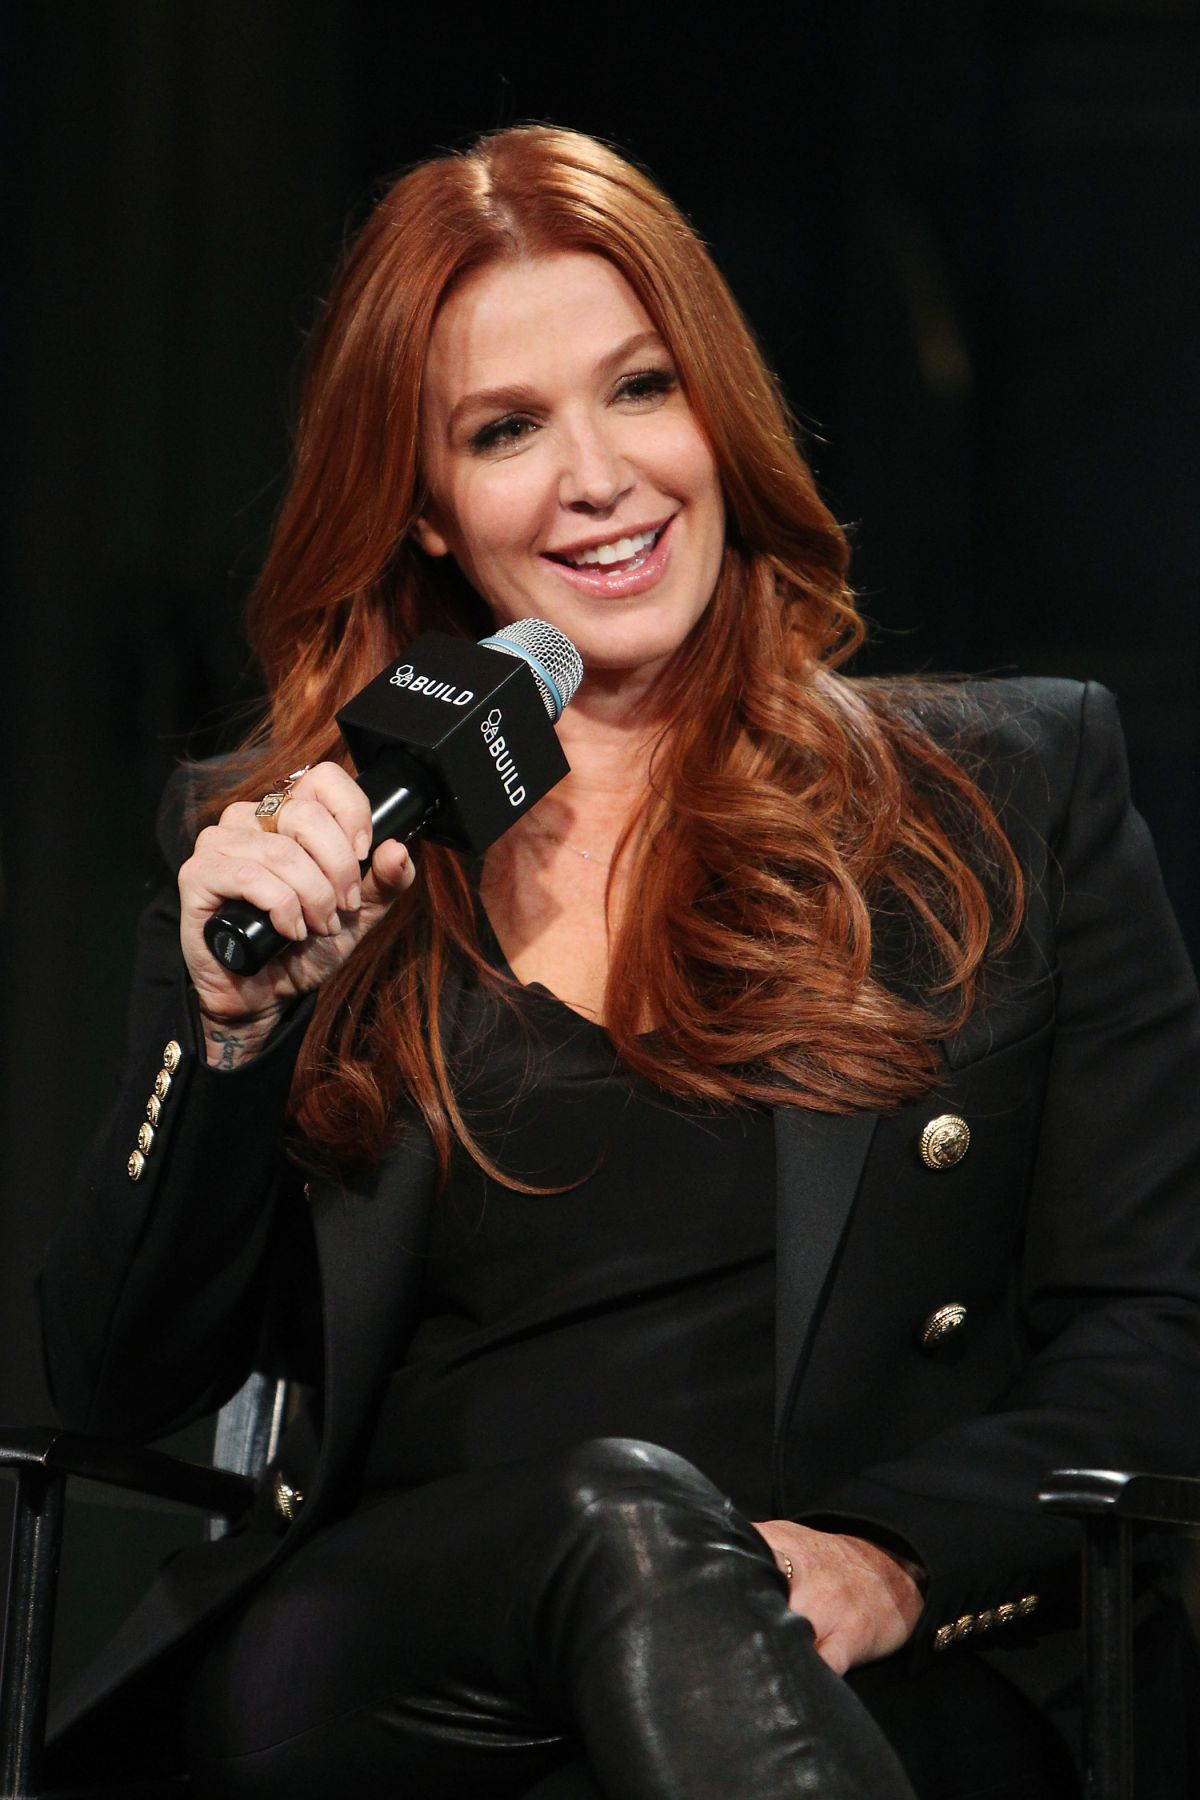 Poppy Montgomery Promoting 'Unforgettable' At Aol Buils Series - Celebzz